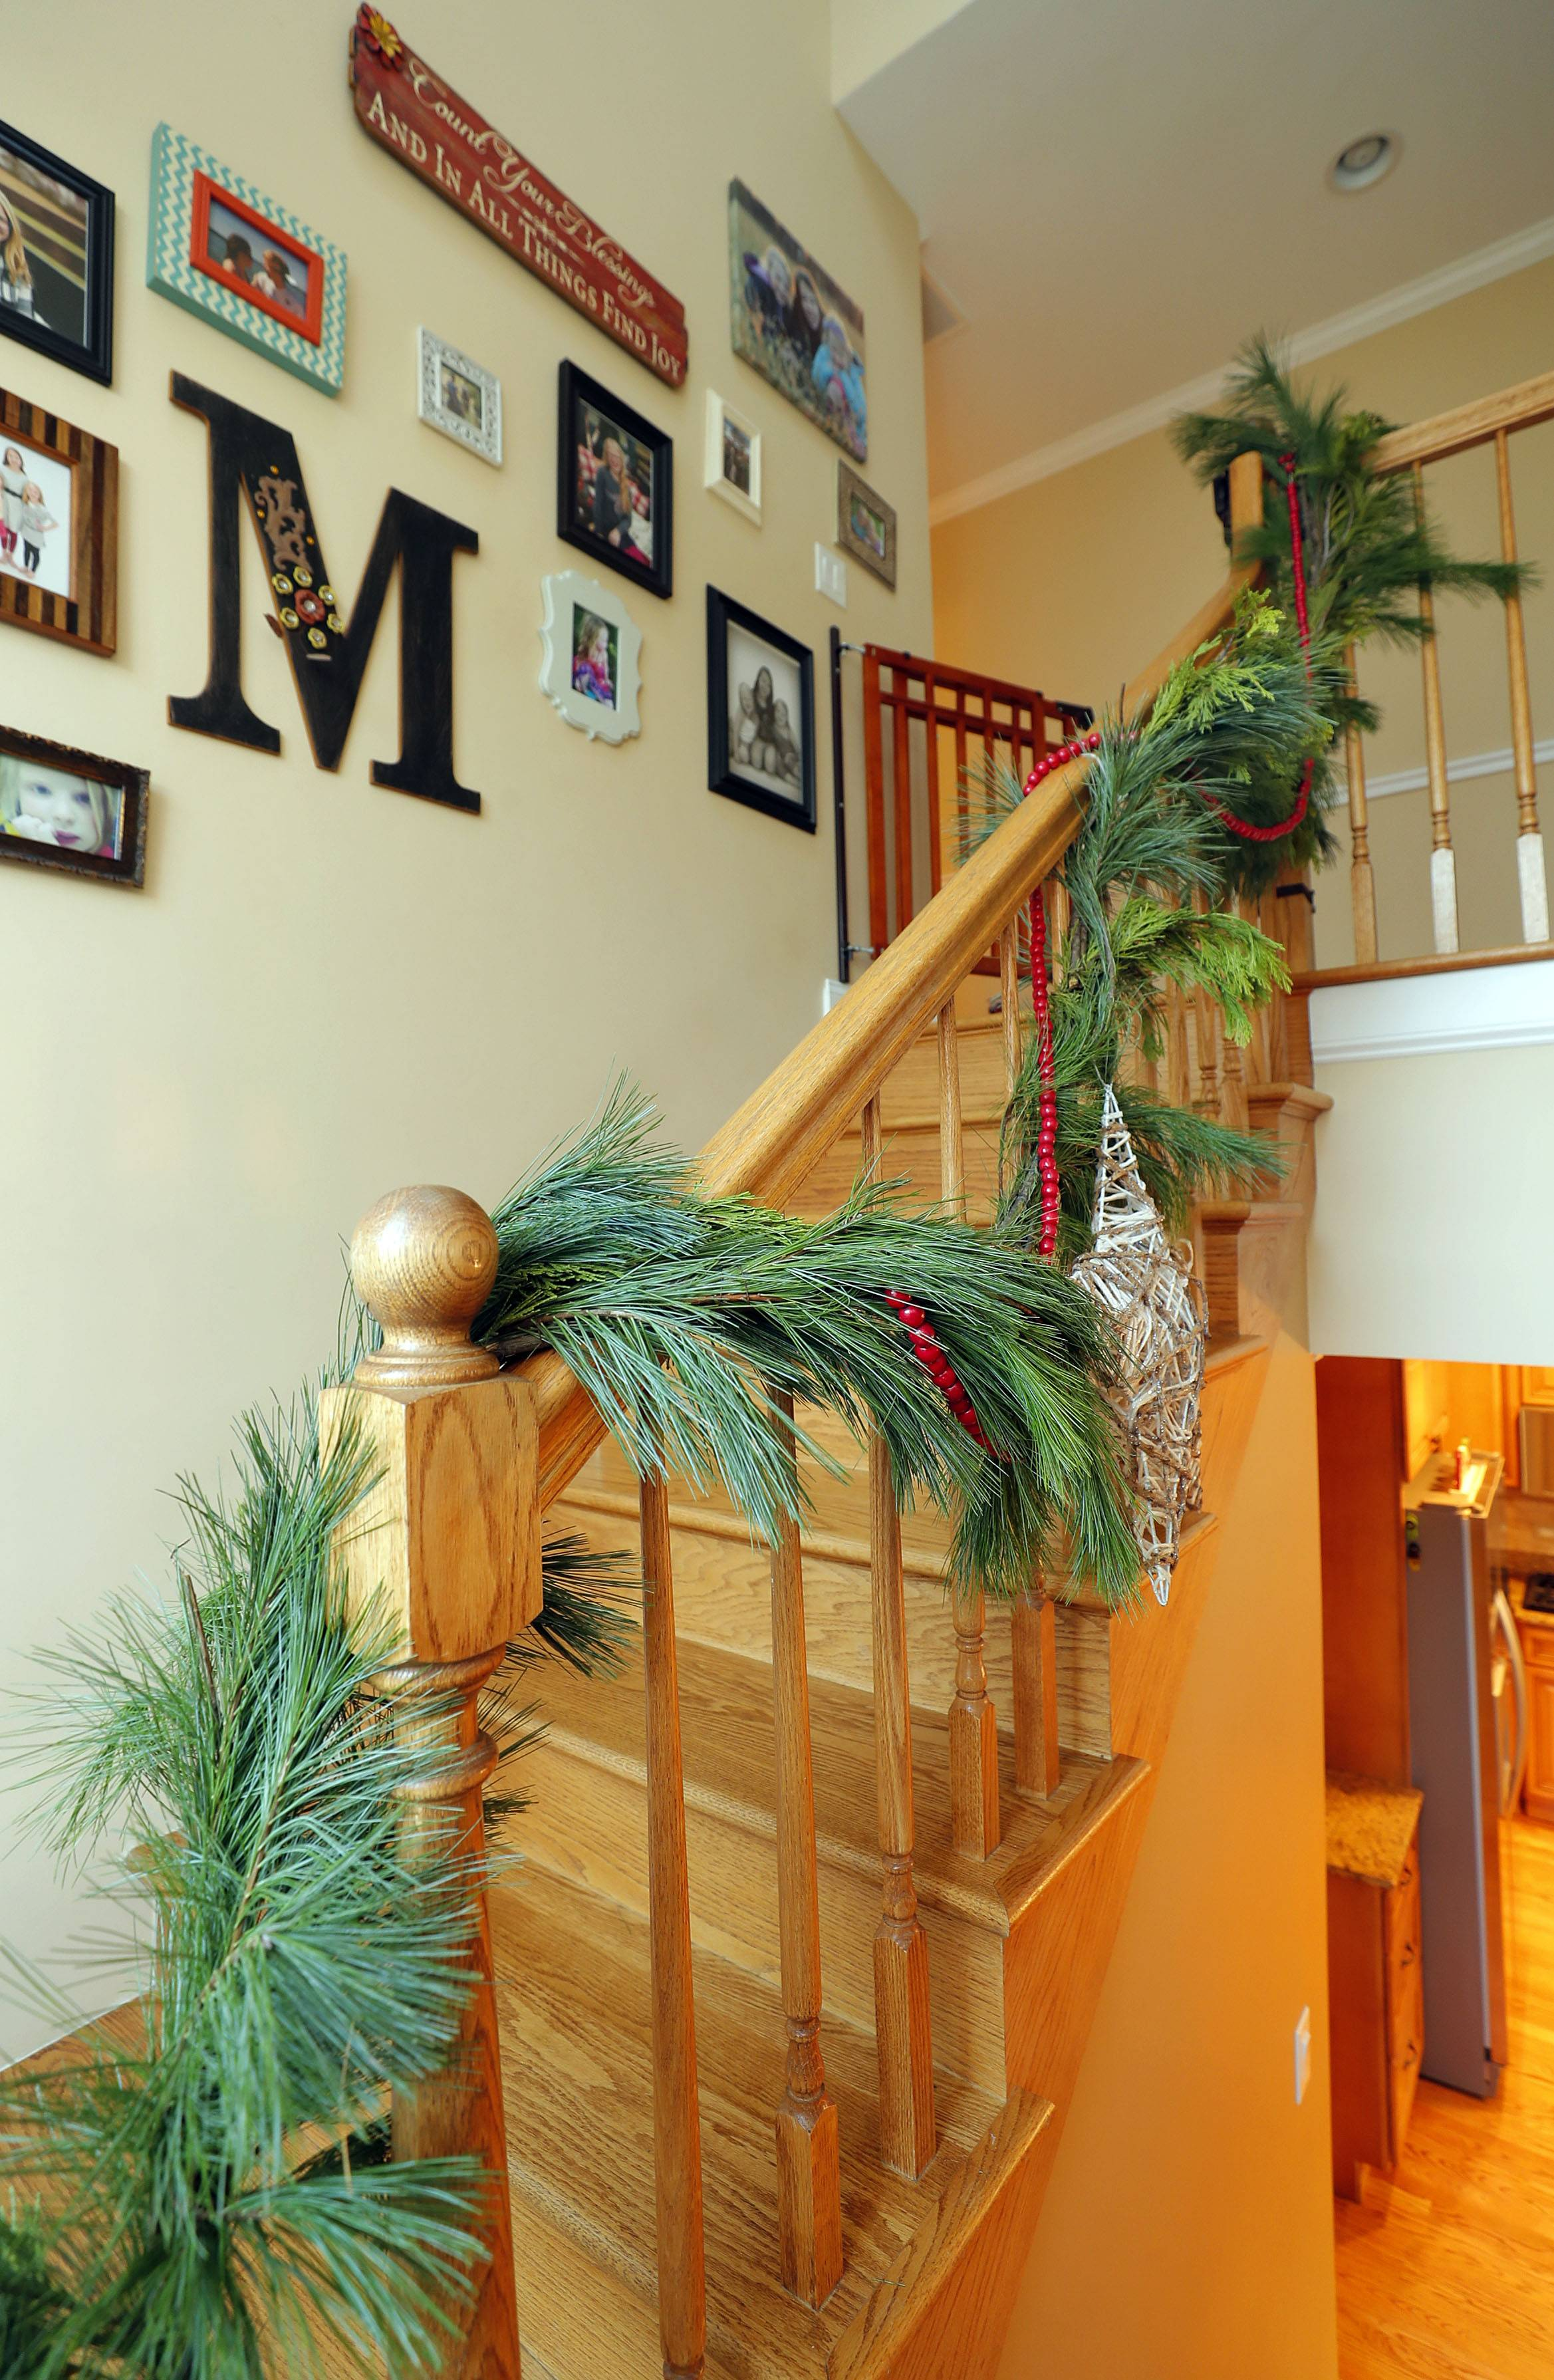 Staircase in Tom and Barb Meier's home, which will be part of the annual Mount Prospect housewalk.